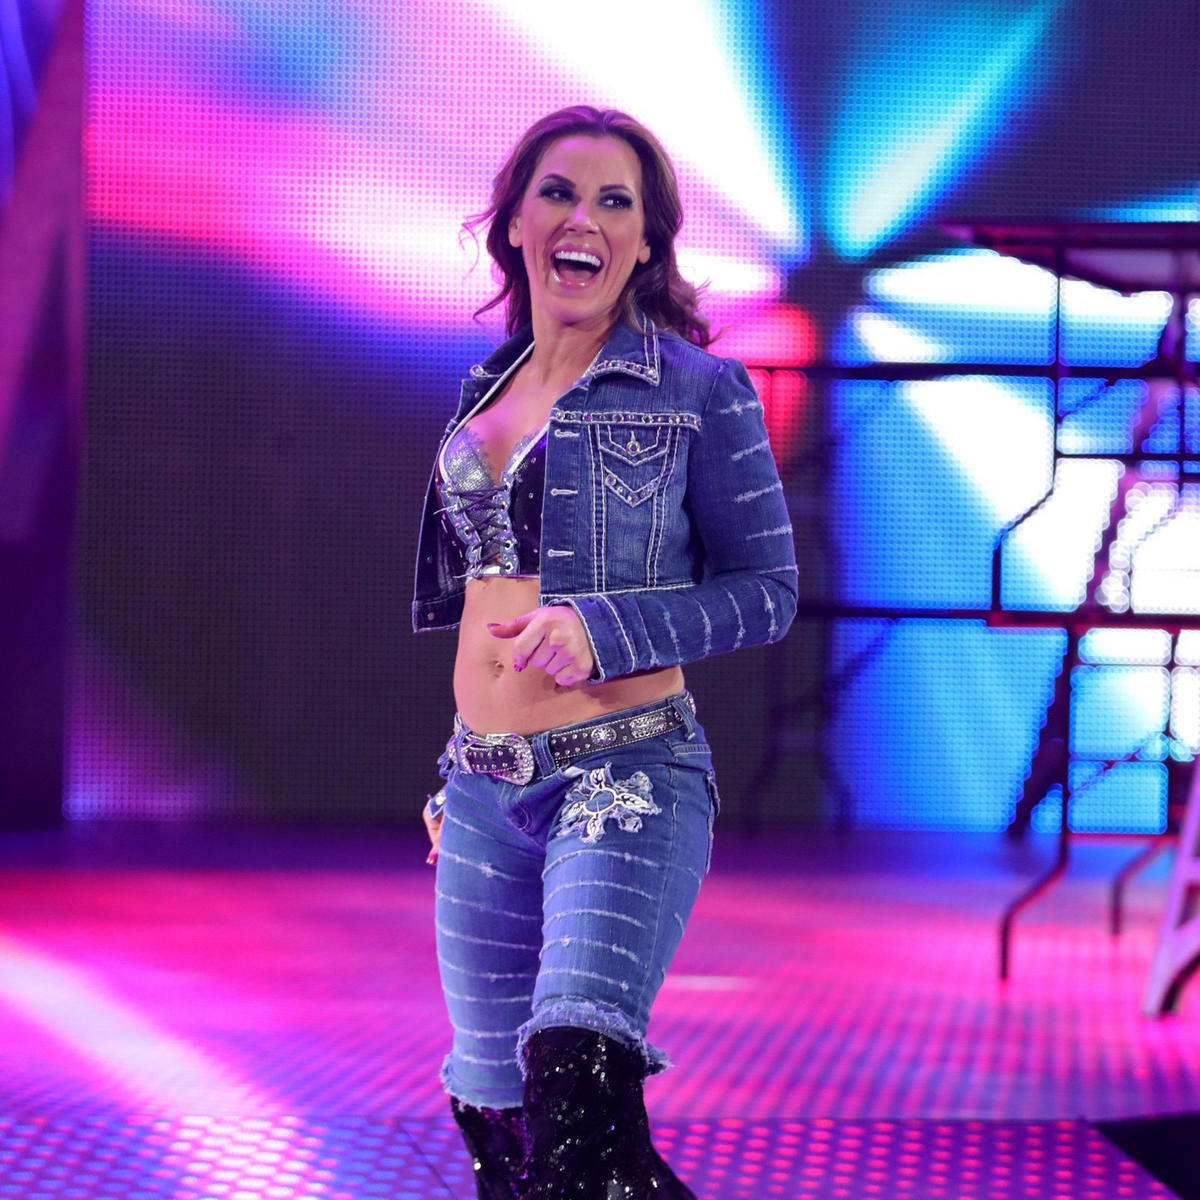 Mickie james nice looking matchless message